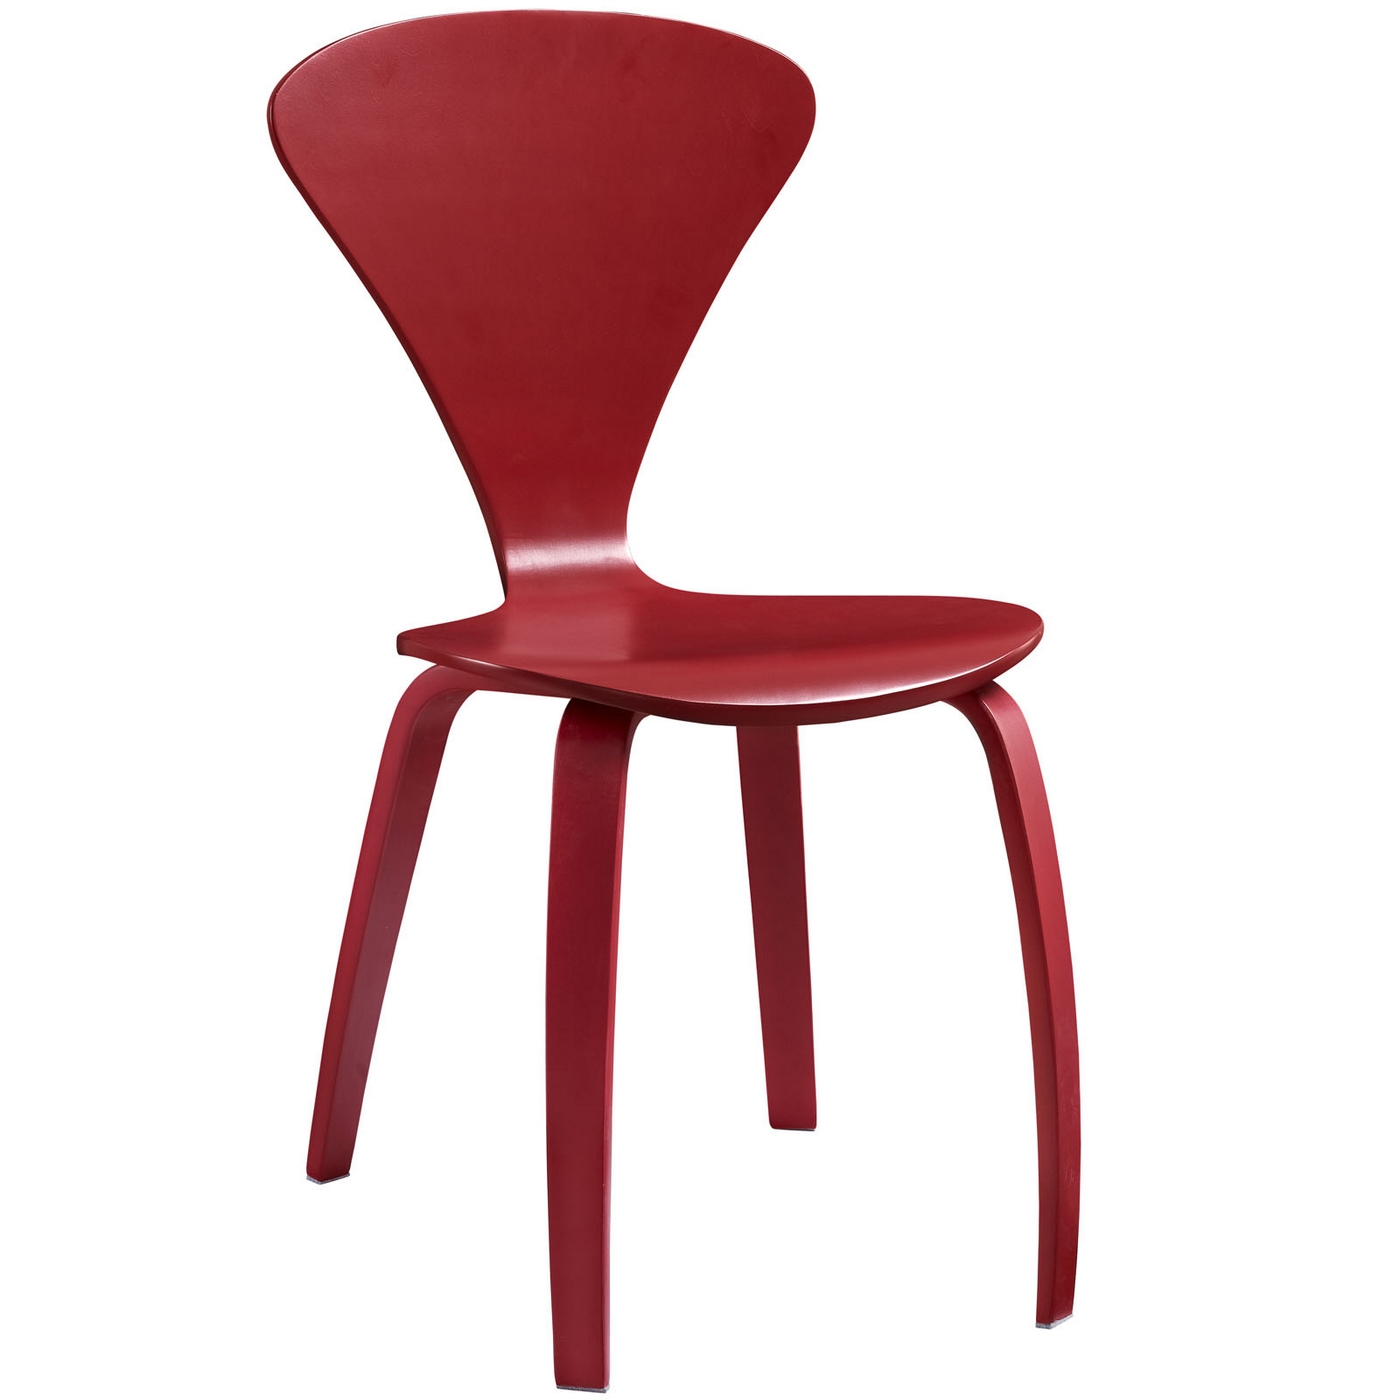 Vortex Contemporary Molded Wood Panel Dining Side Chair Red